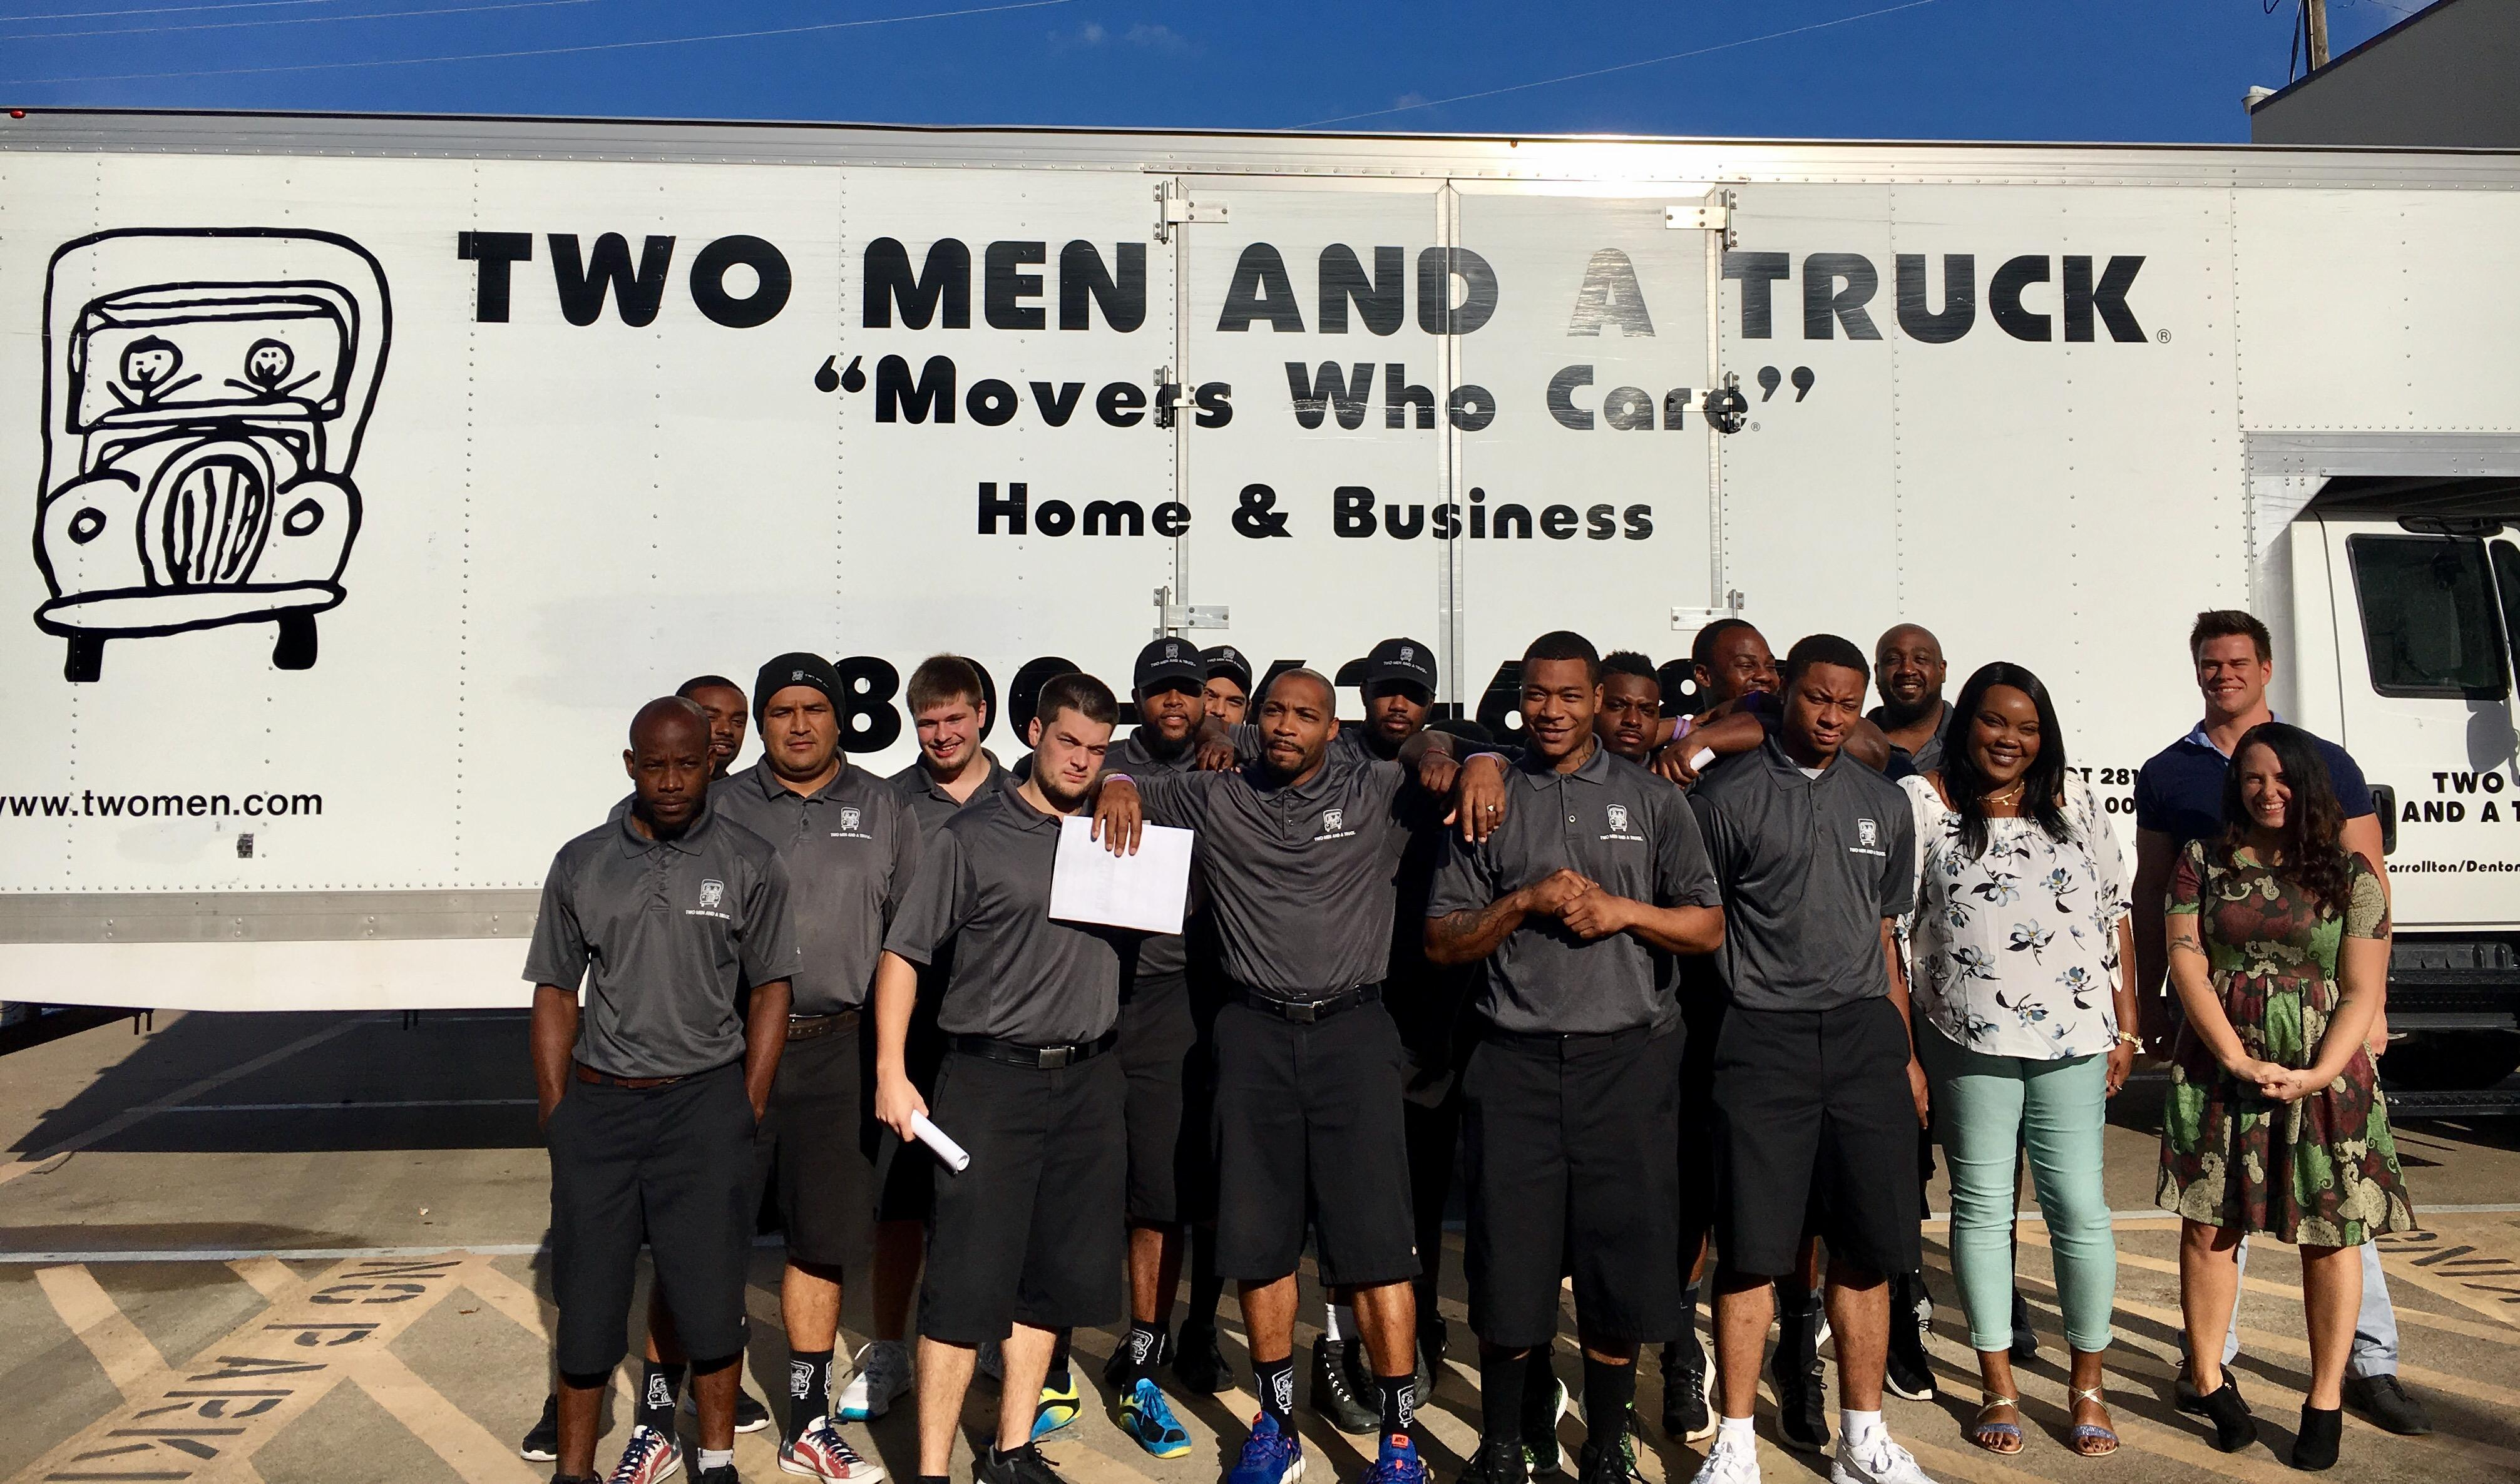 Fabulous Movers In Carrollton Tx Two Men And A Truck Download Free Architecture Designs Grimeyleaguecom